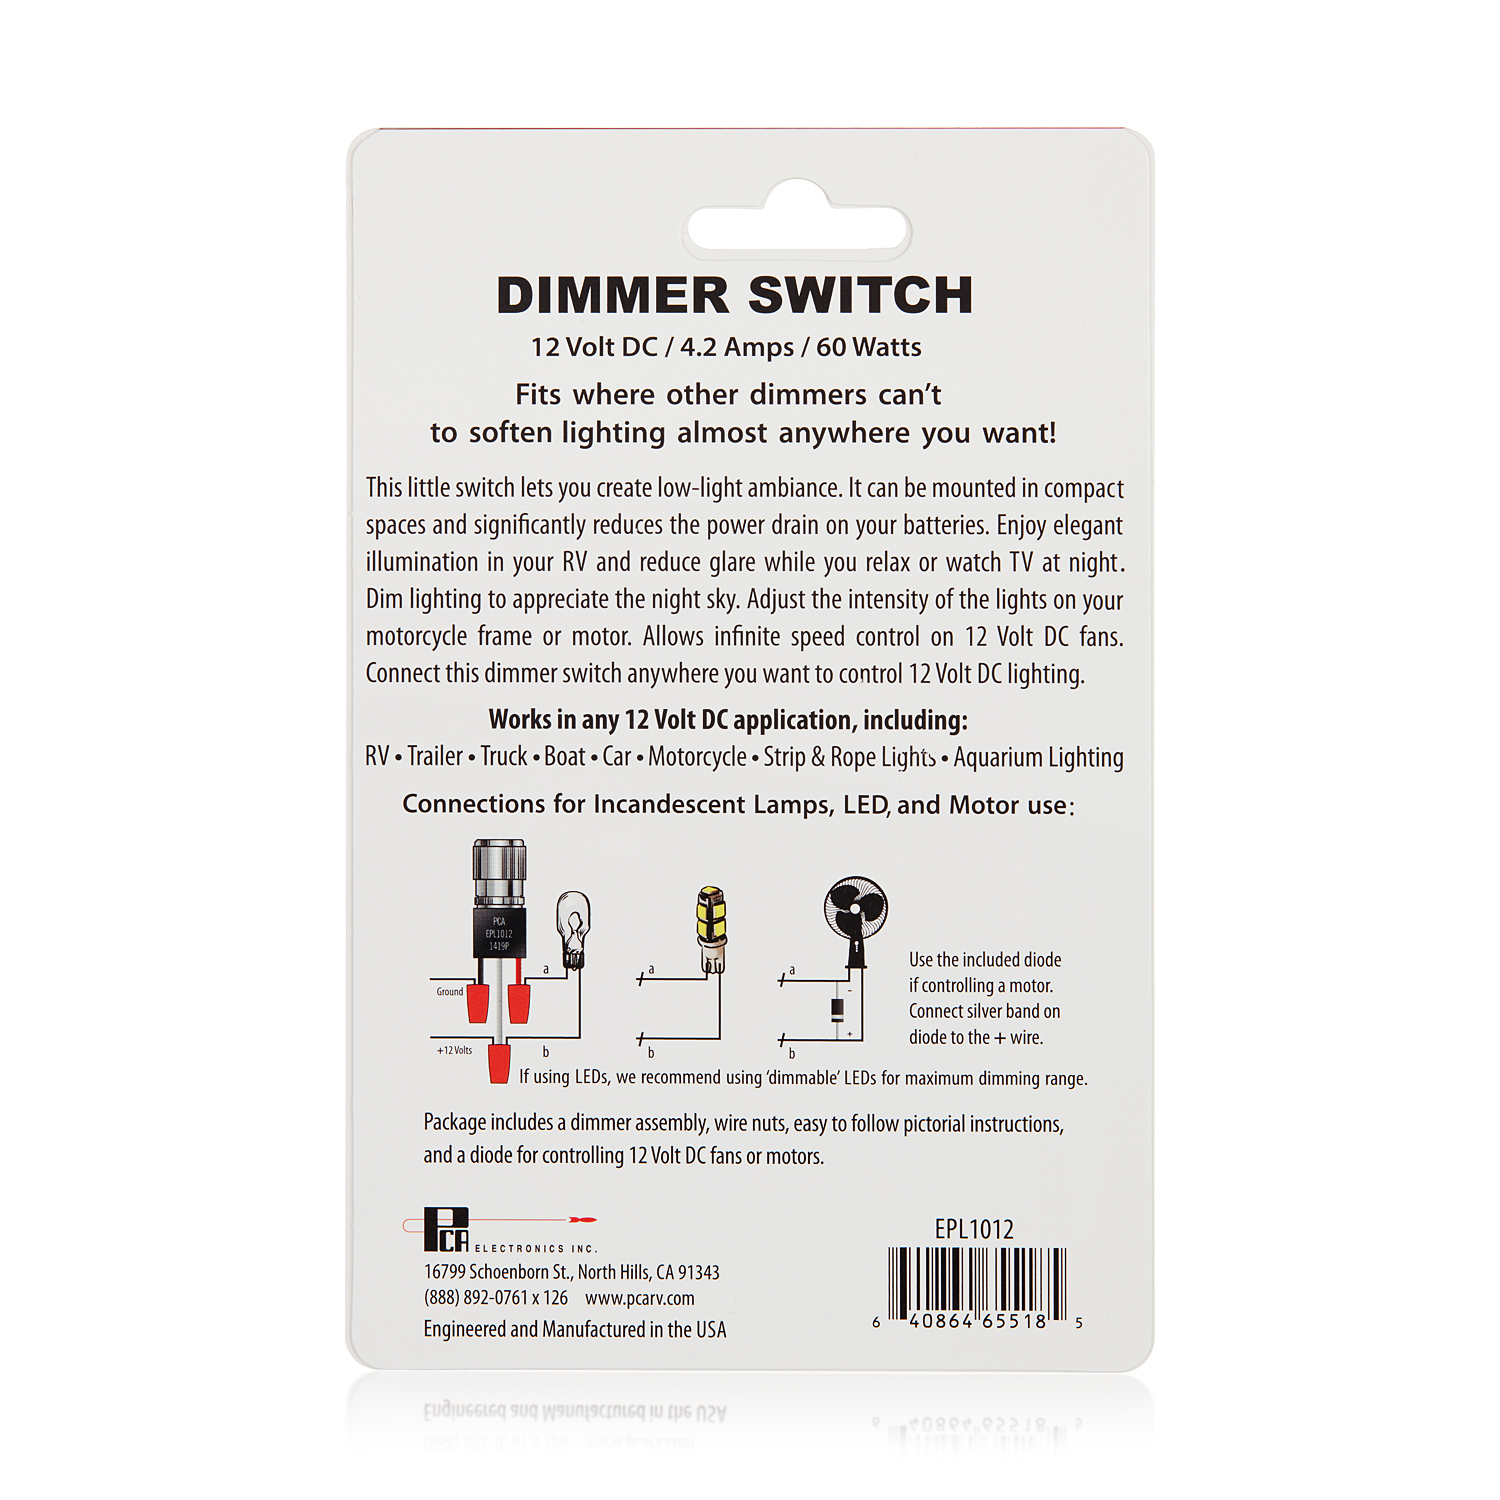 Pcarv Recreational Vehicle Products Division 12v Dc Dimmer Wiring A Lamp Installation Instructions